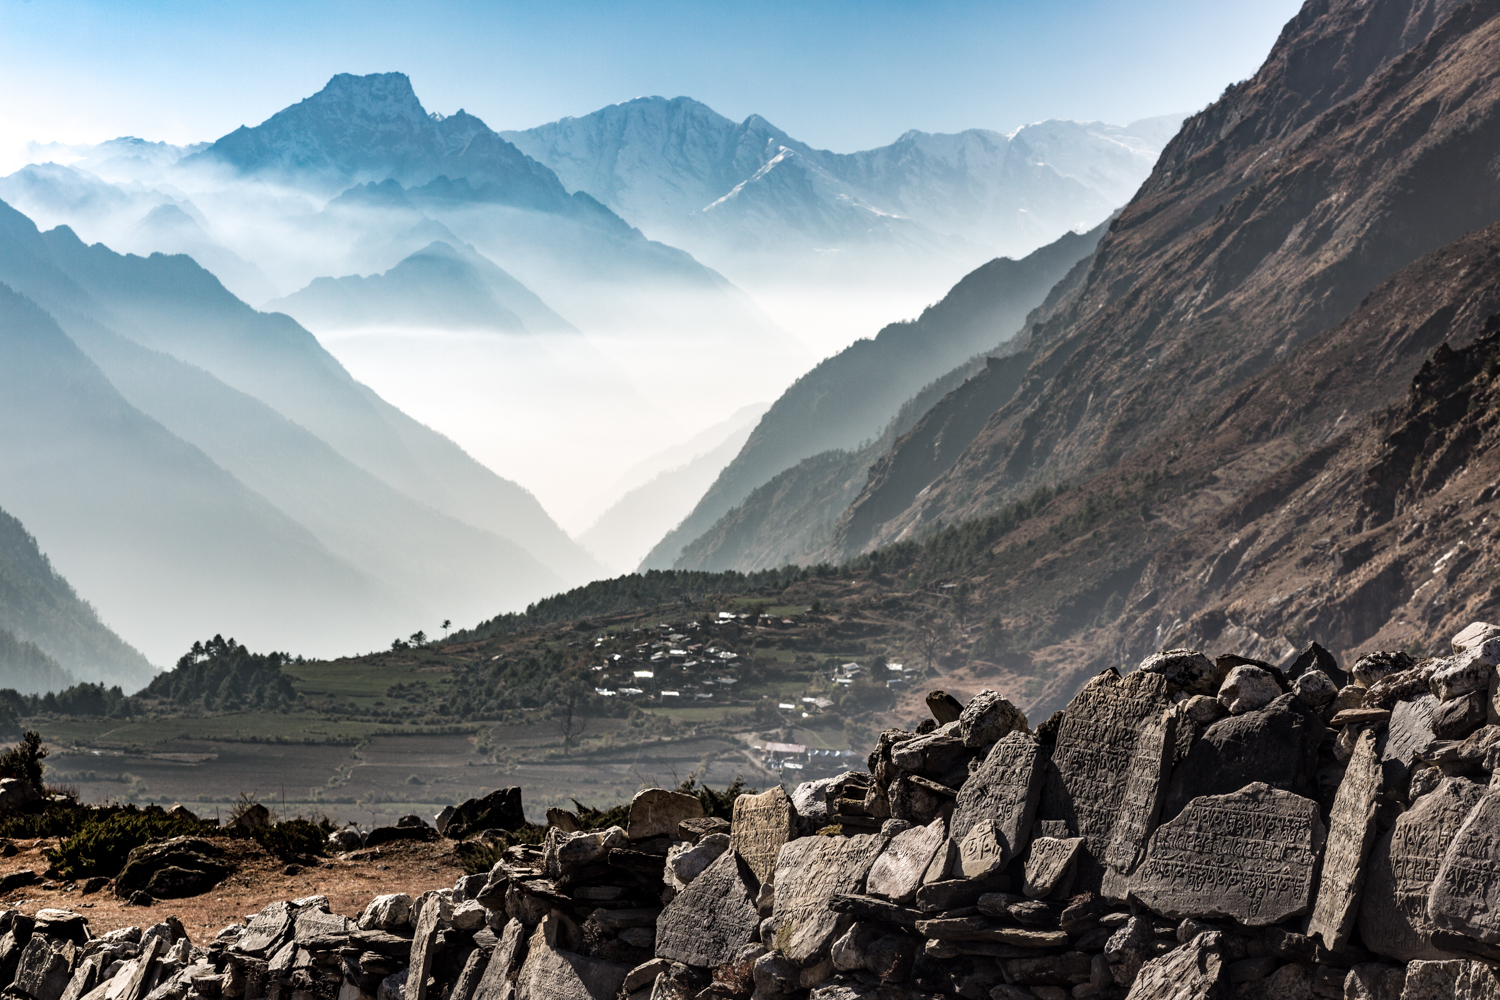 Tsum Valley. In the foreground are mani stones bearing Budhist mantras in memory of deceased persons.